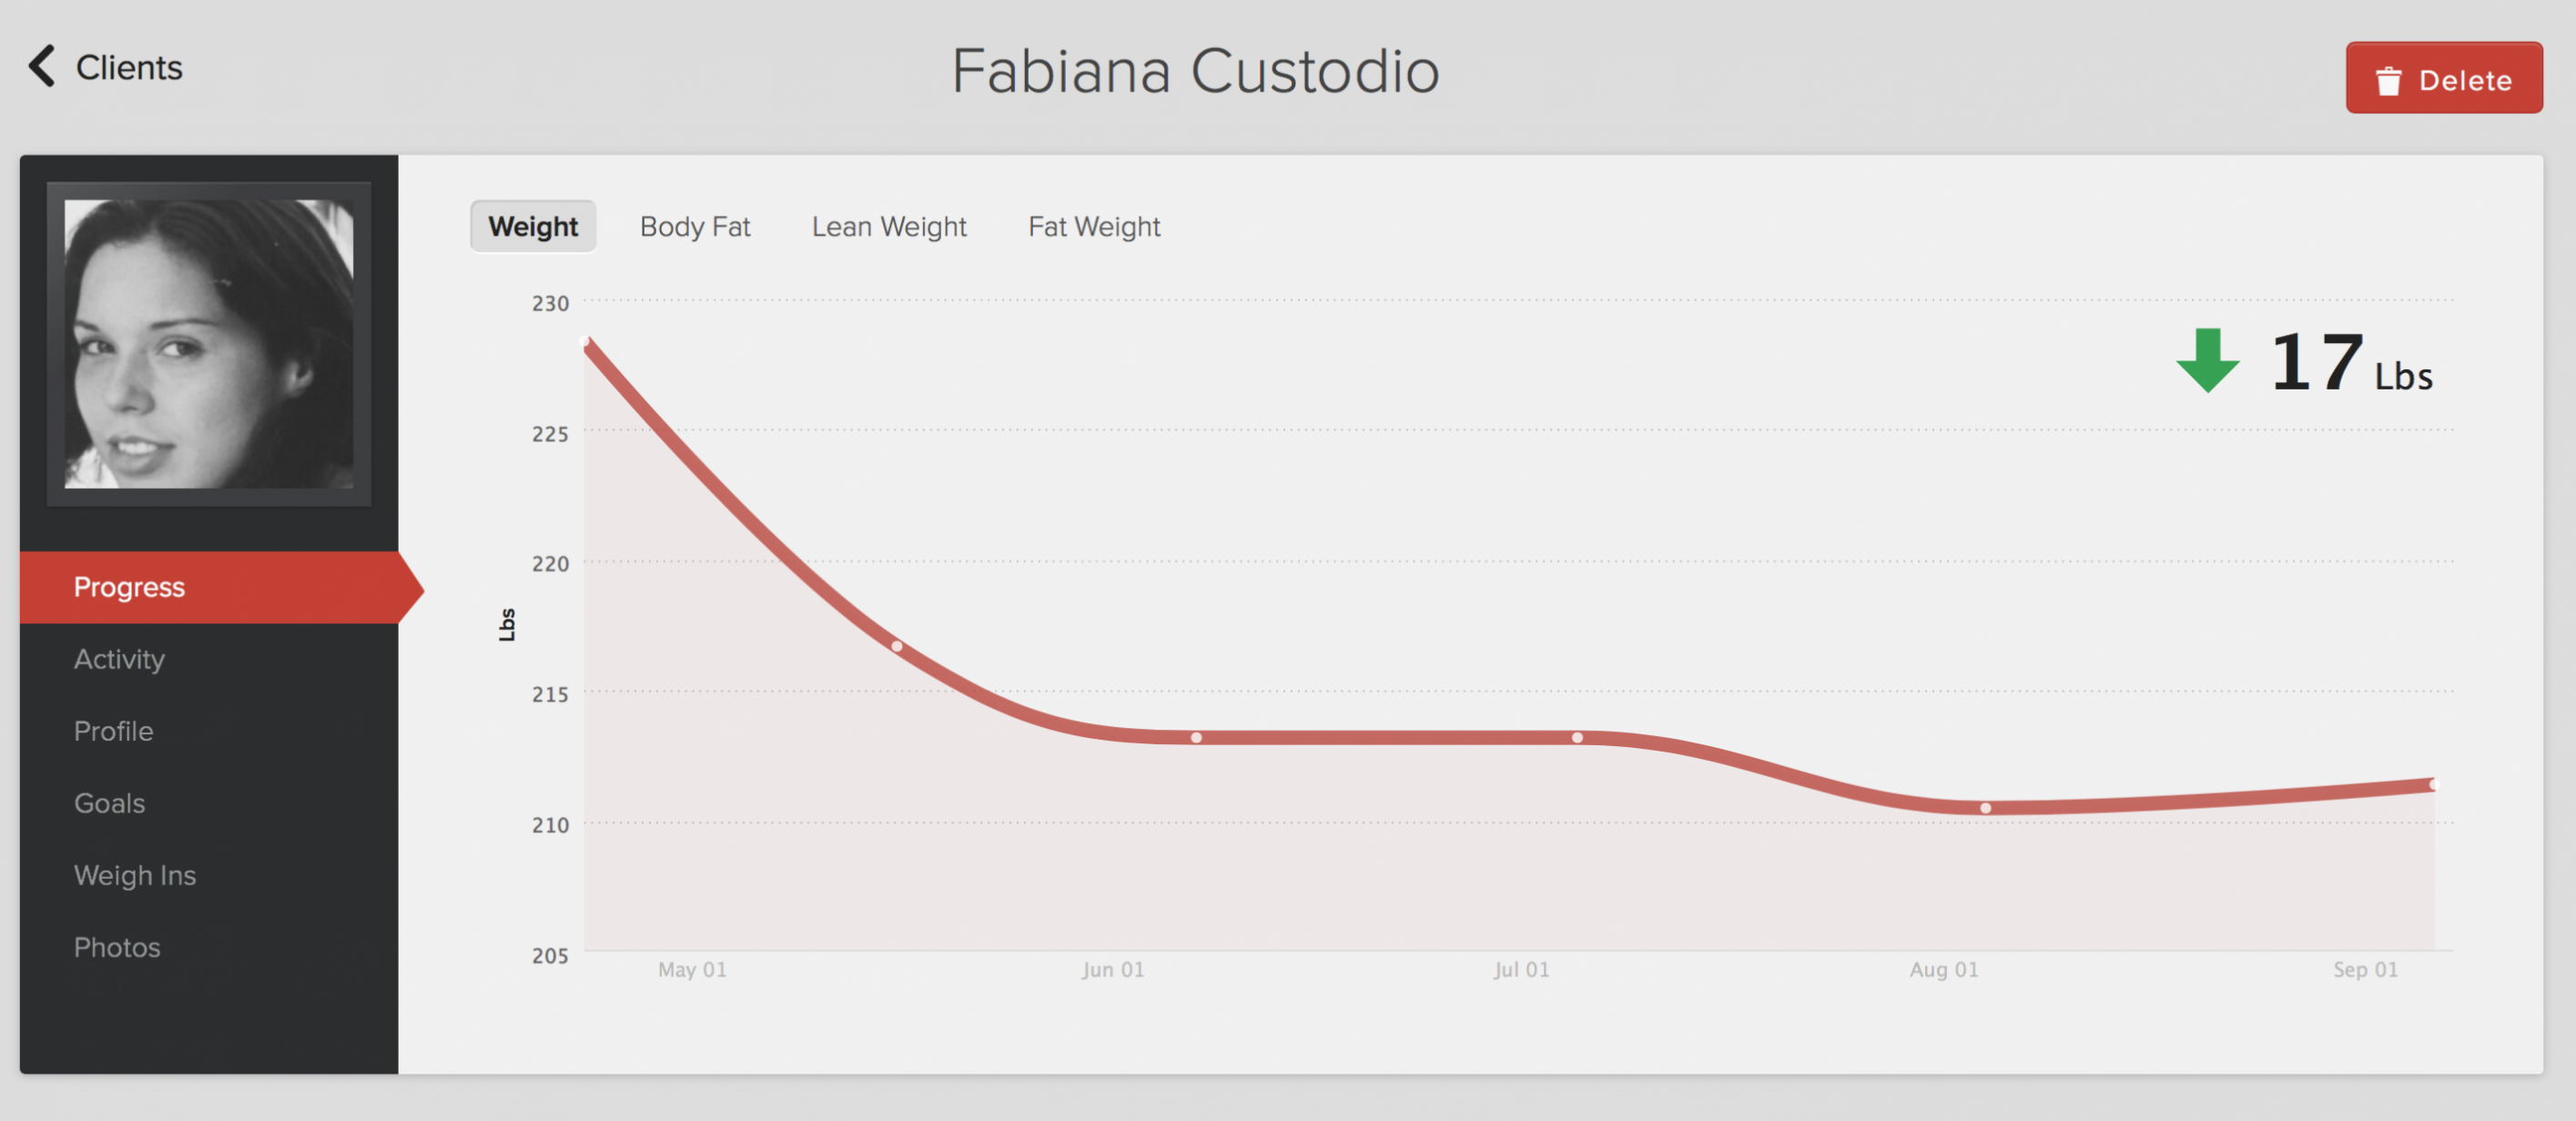 How Fabiana lost 17lbs in 8 Weeks!